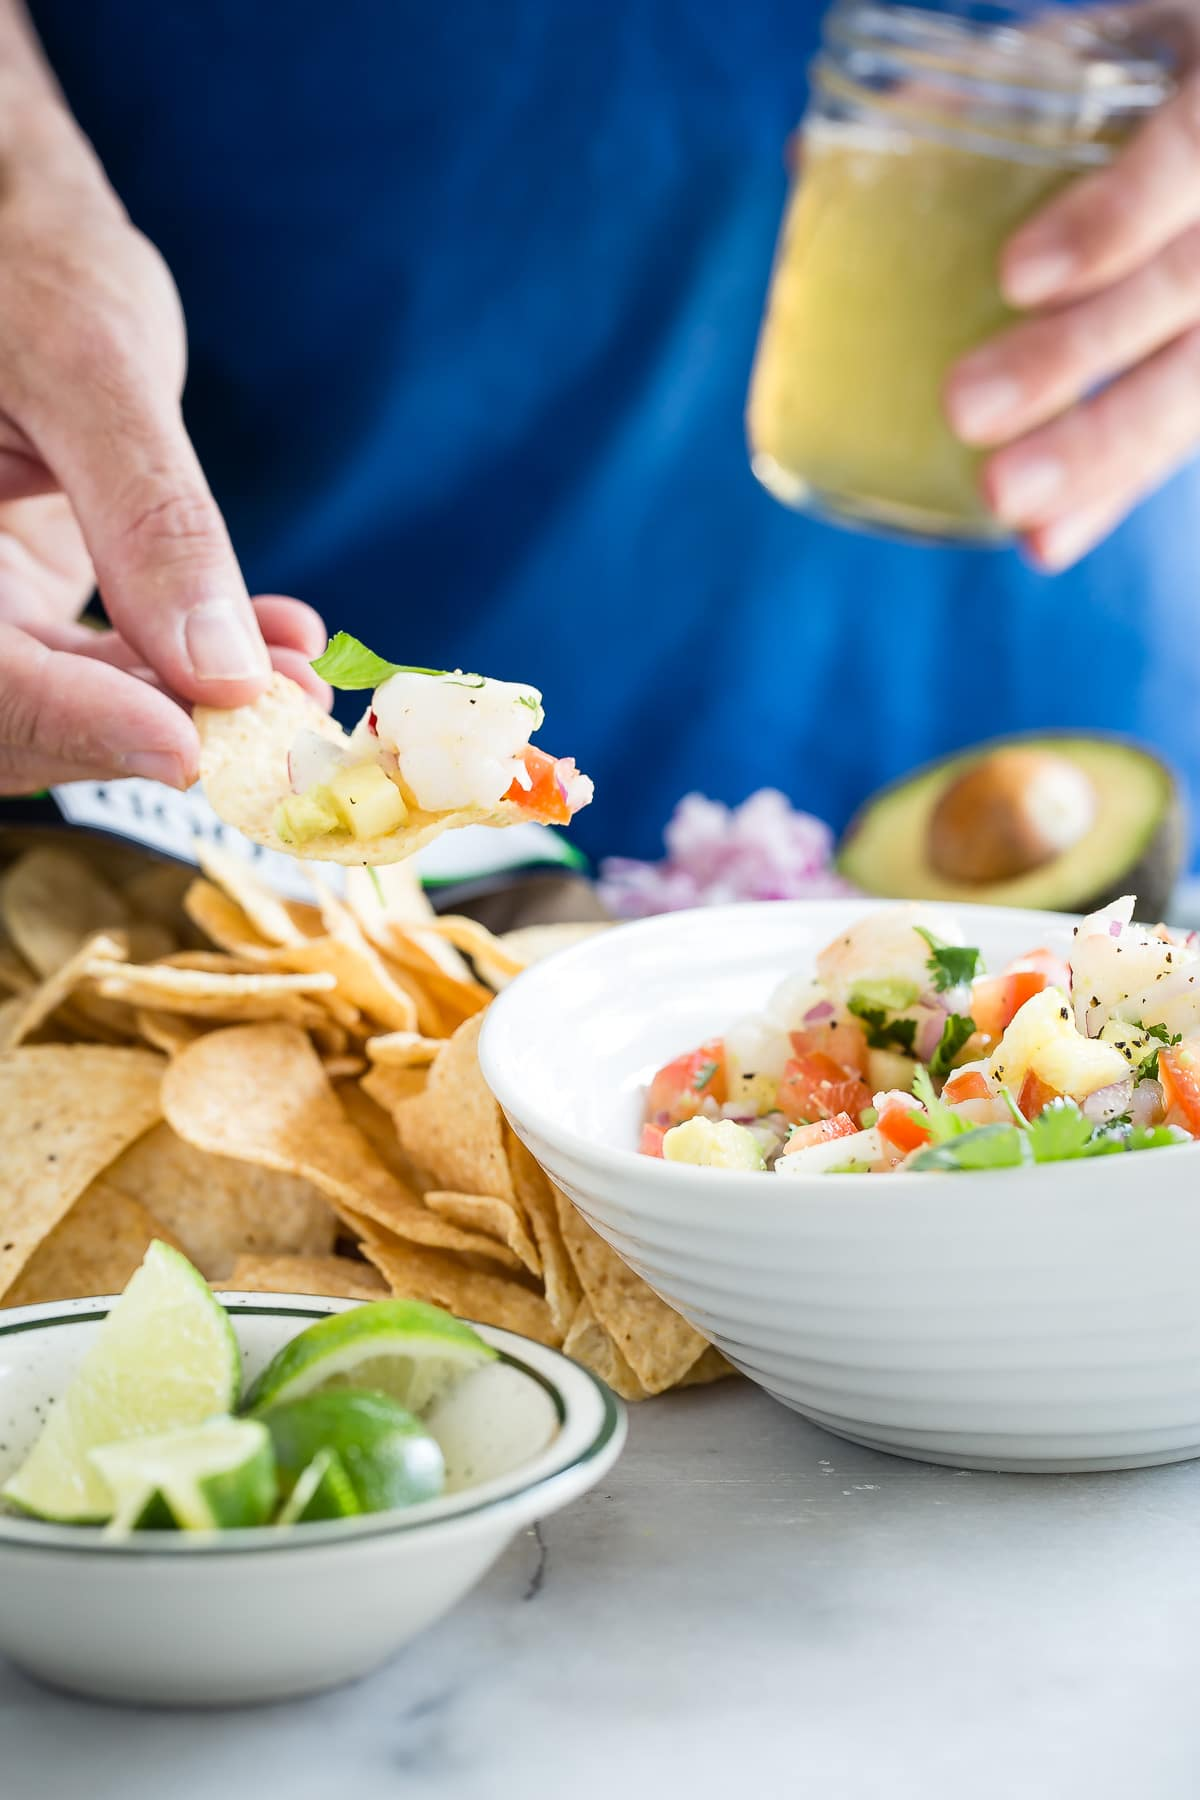 Dipping chips into a bowl of ceviche